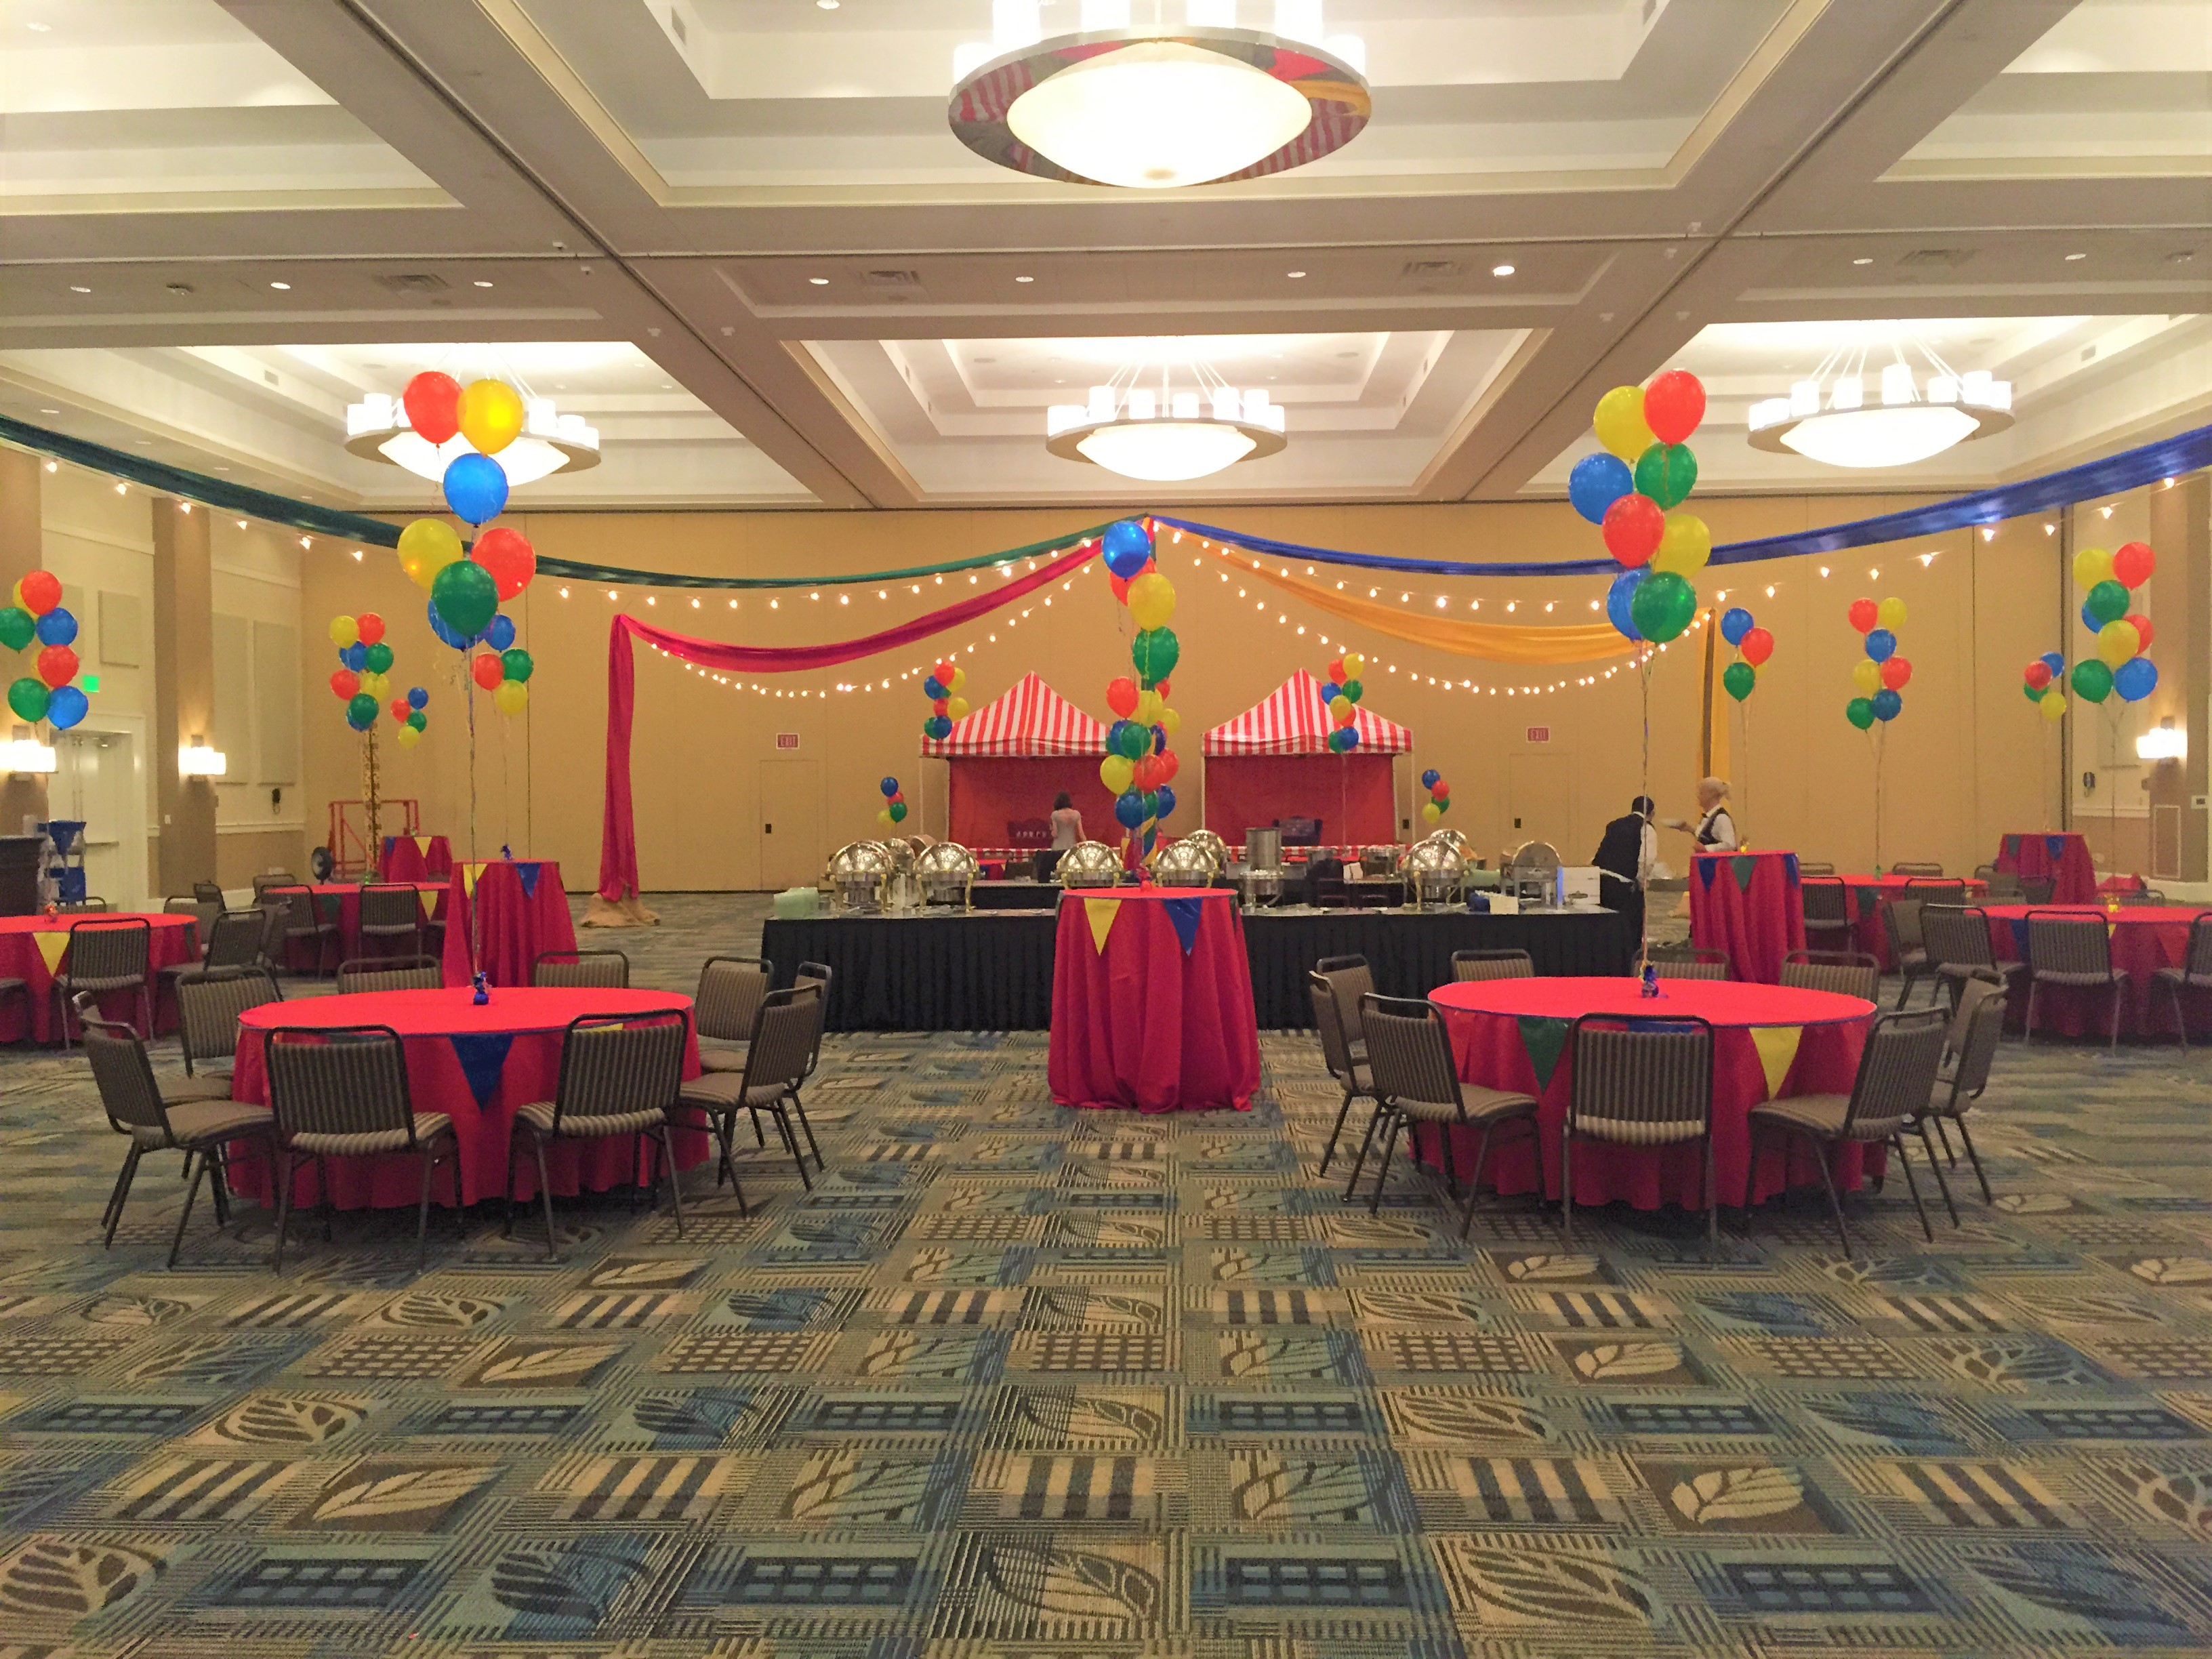 envents_corporate events_myrtle beach_dm